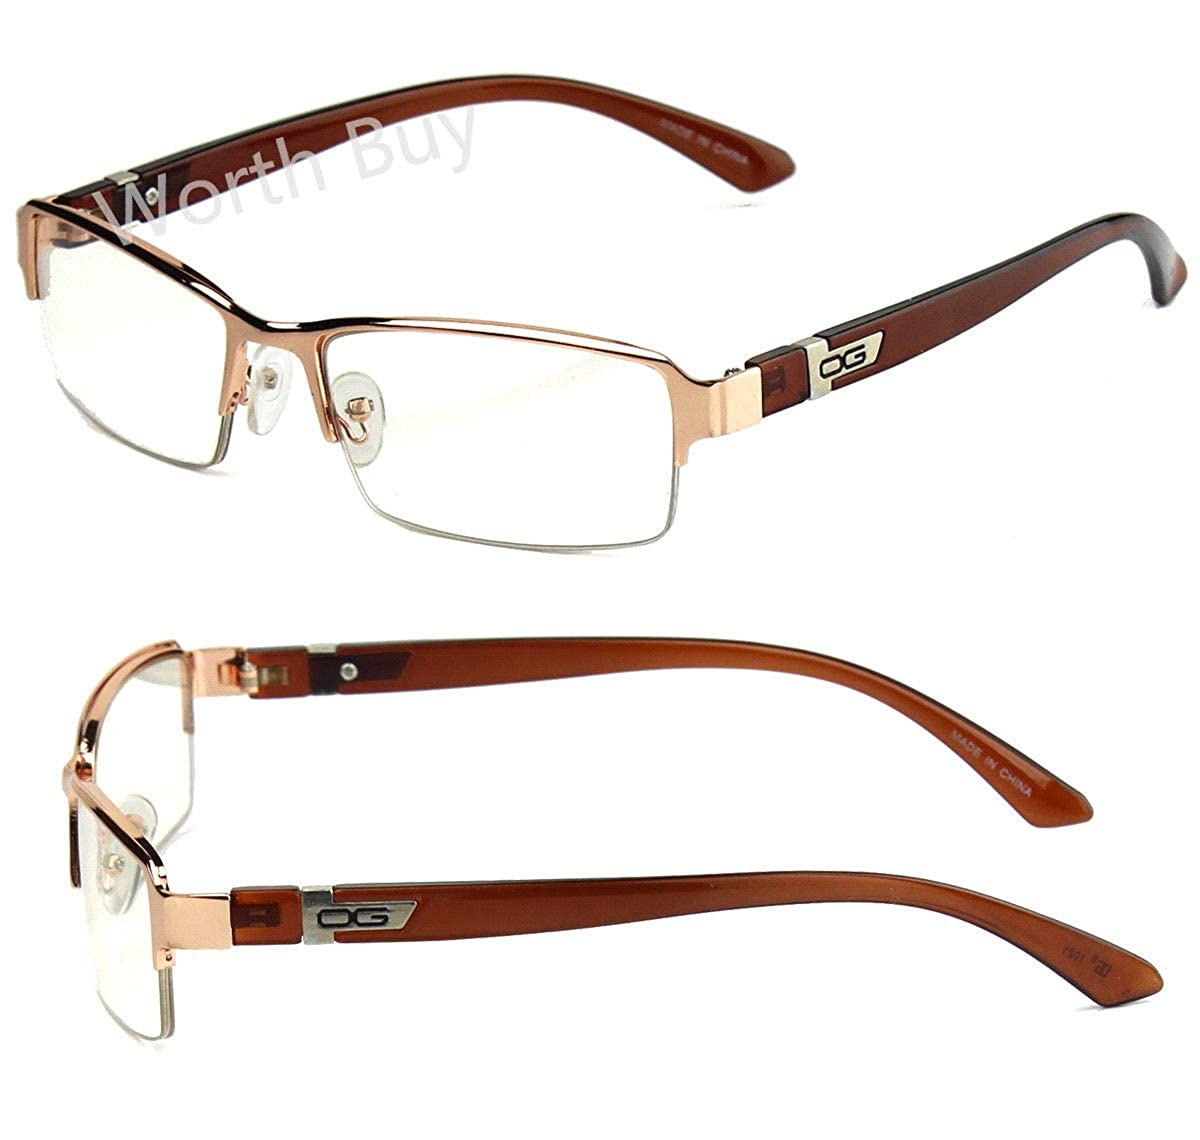 3d7eddbe1363 Amazon.com: Mens Womens DG Clear Lens Frame Glasses Designer Fashion  Optical RX Half Rim: Clothing